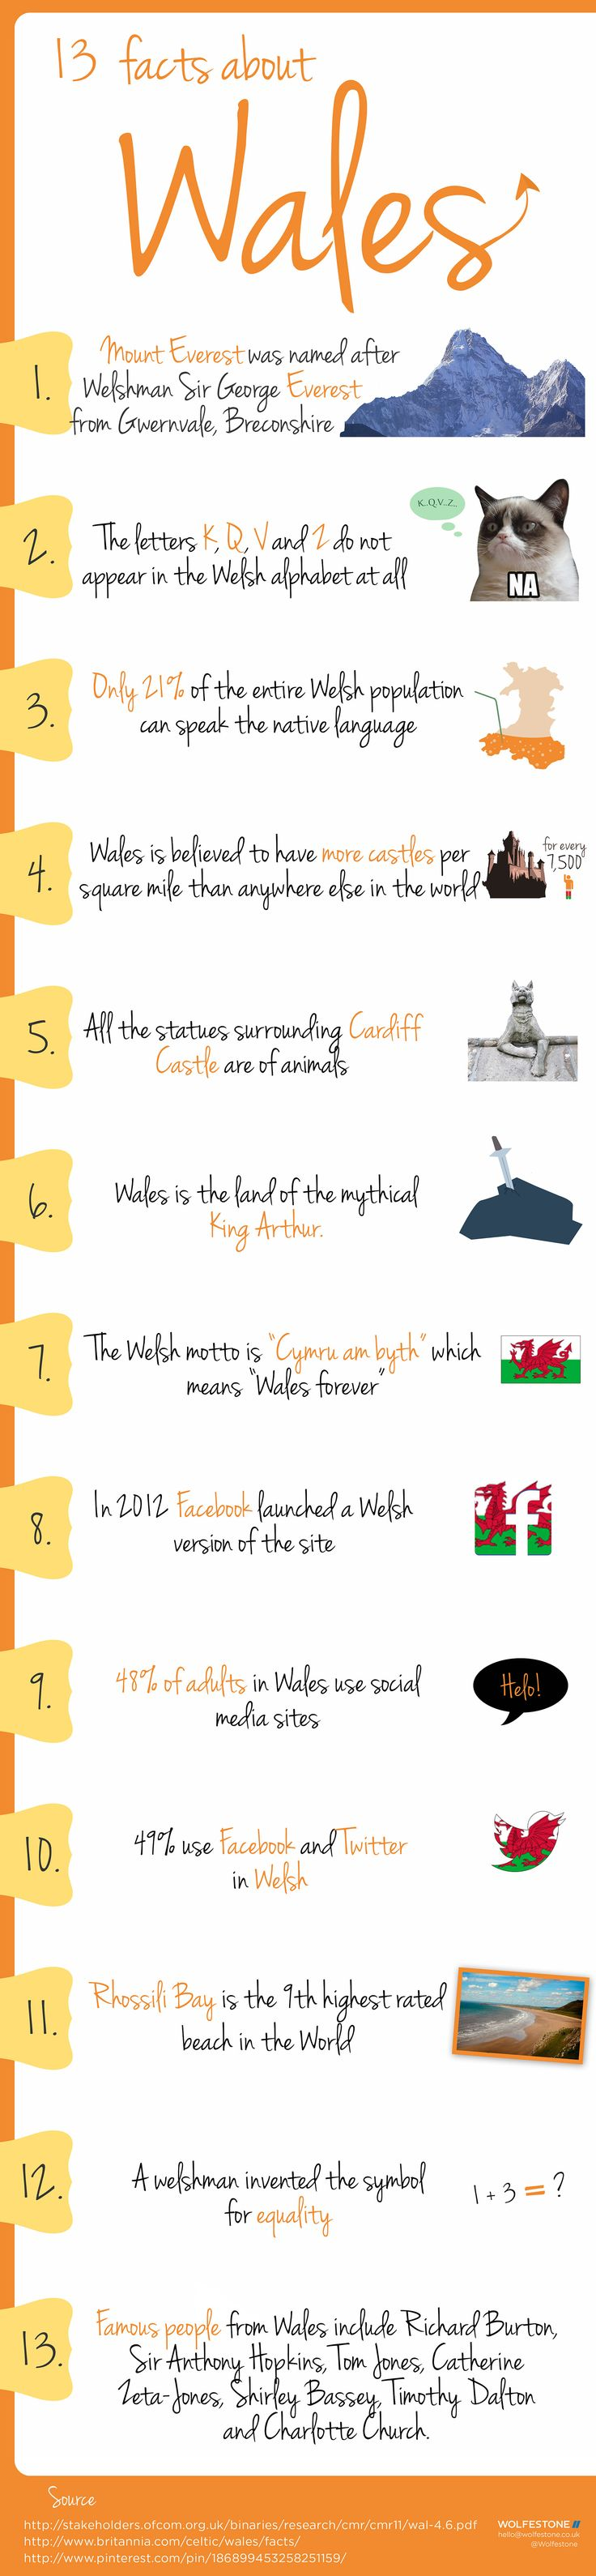 13 facts about Wales we bet you didn't know  #infographic #Wales #facts